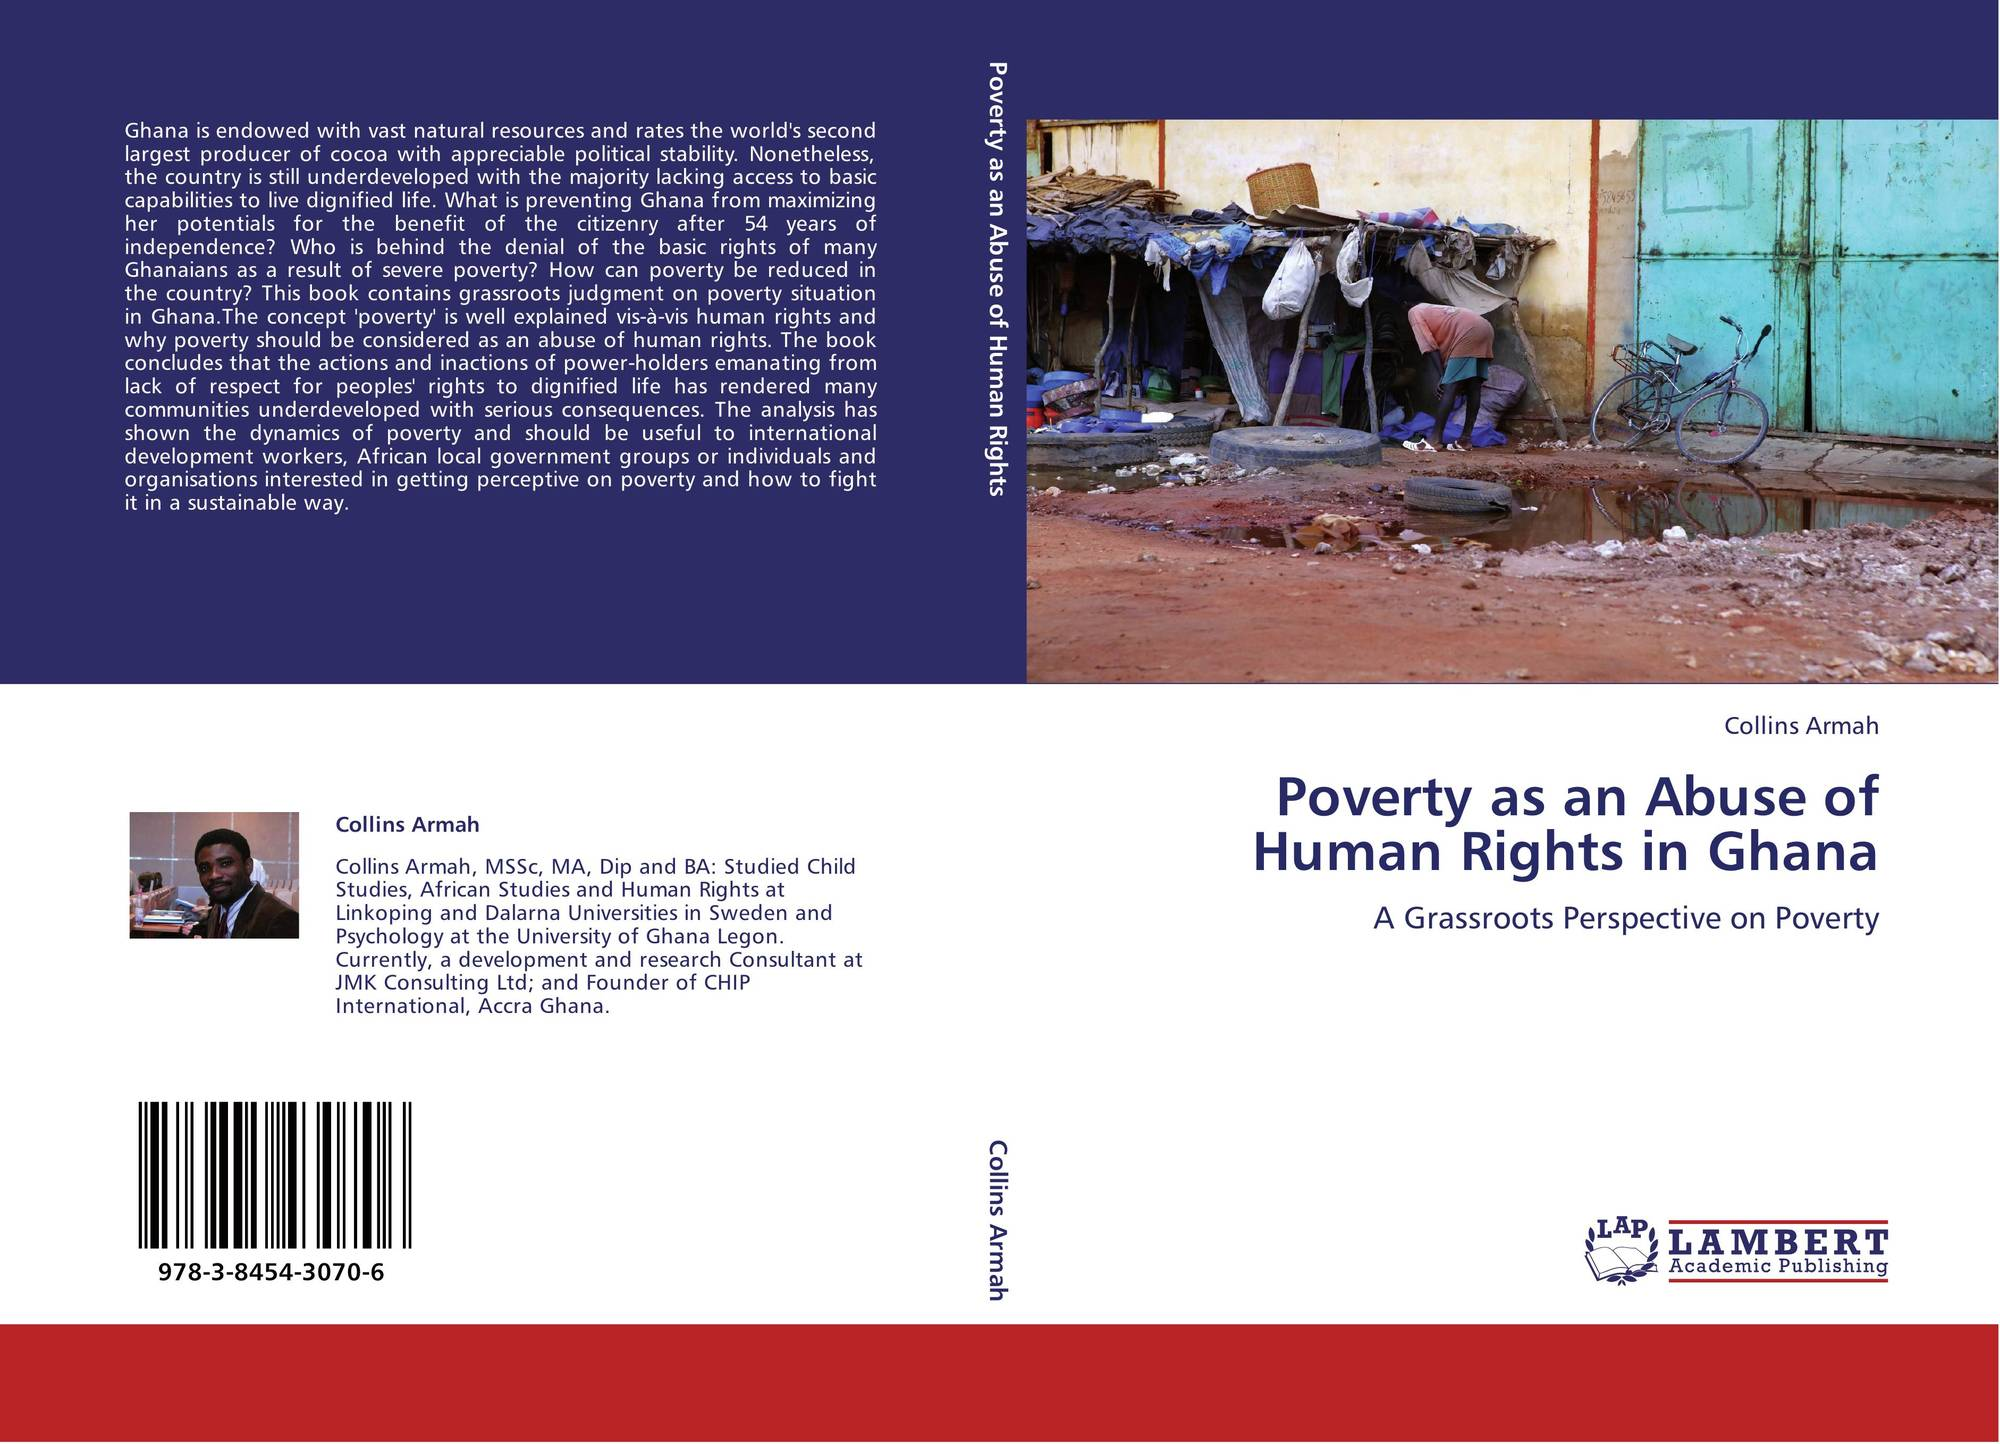 a description of poverty as the lack of or inability to afford the basic human needs For an example of the more narrow sense of intermediate poverty, as the inability to be social, consider this quotation: intermediate poverty could thus be defined as a lack of sufficient economic capacities to engage in a set of basic, fundamental human social activities that defines what it means to live a life worthy of a human being in a.